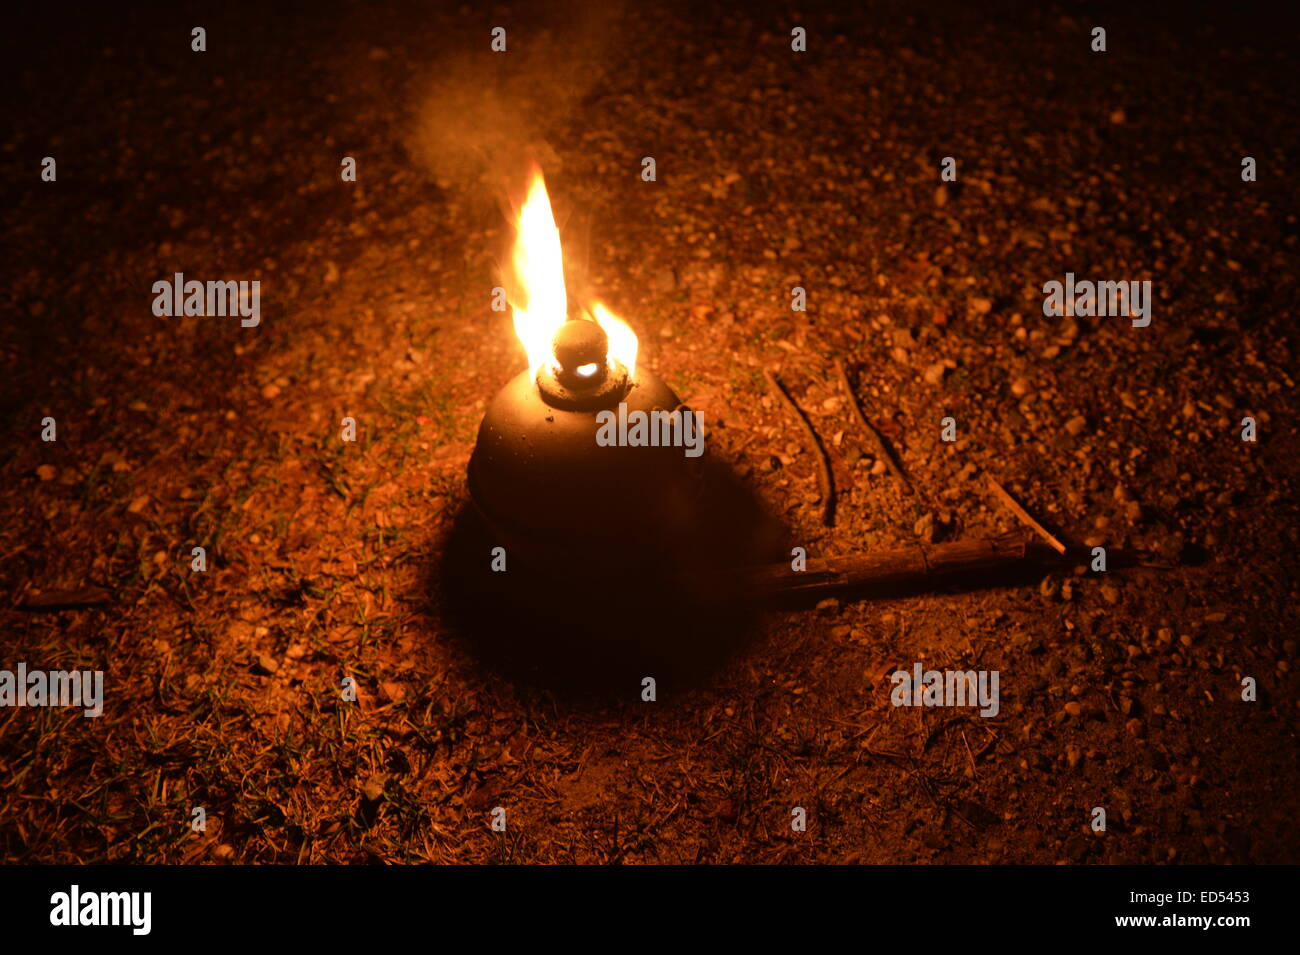 Old Bethpage, New York, USA. December 26, 2014. Paths are lit by antique kerosene smudge pots, road torches, at - Stock Image